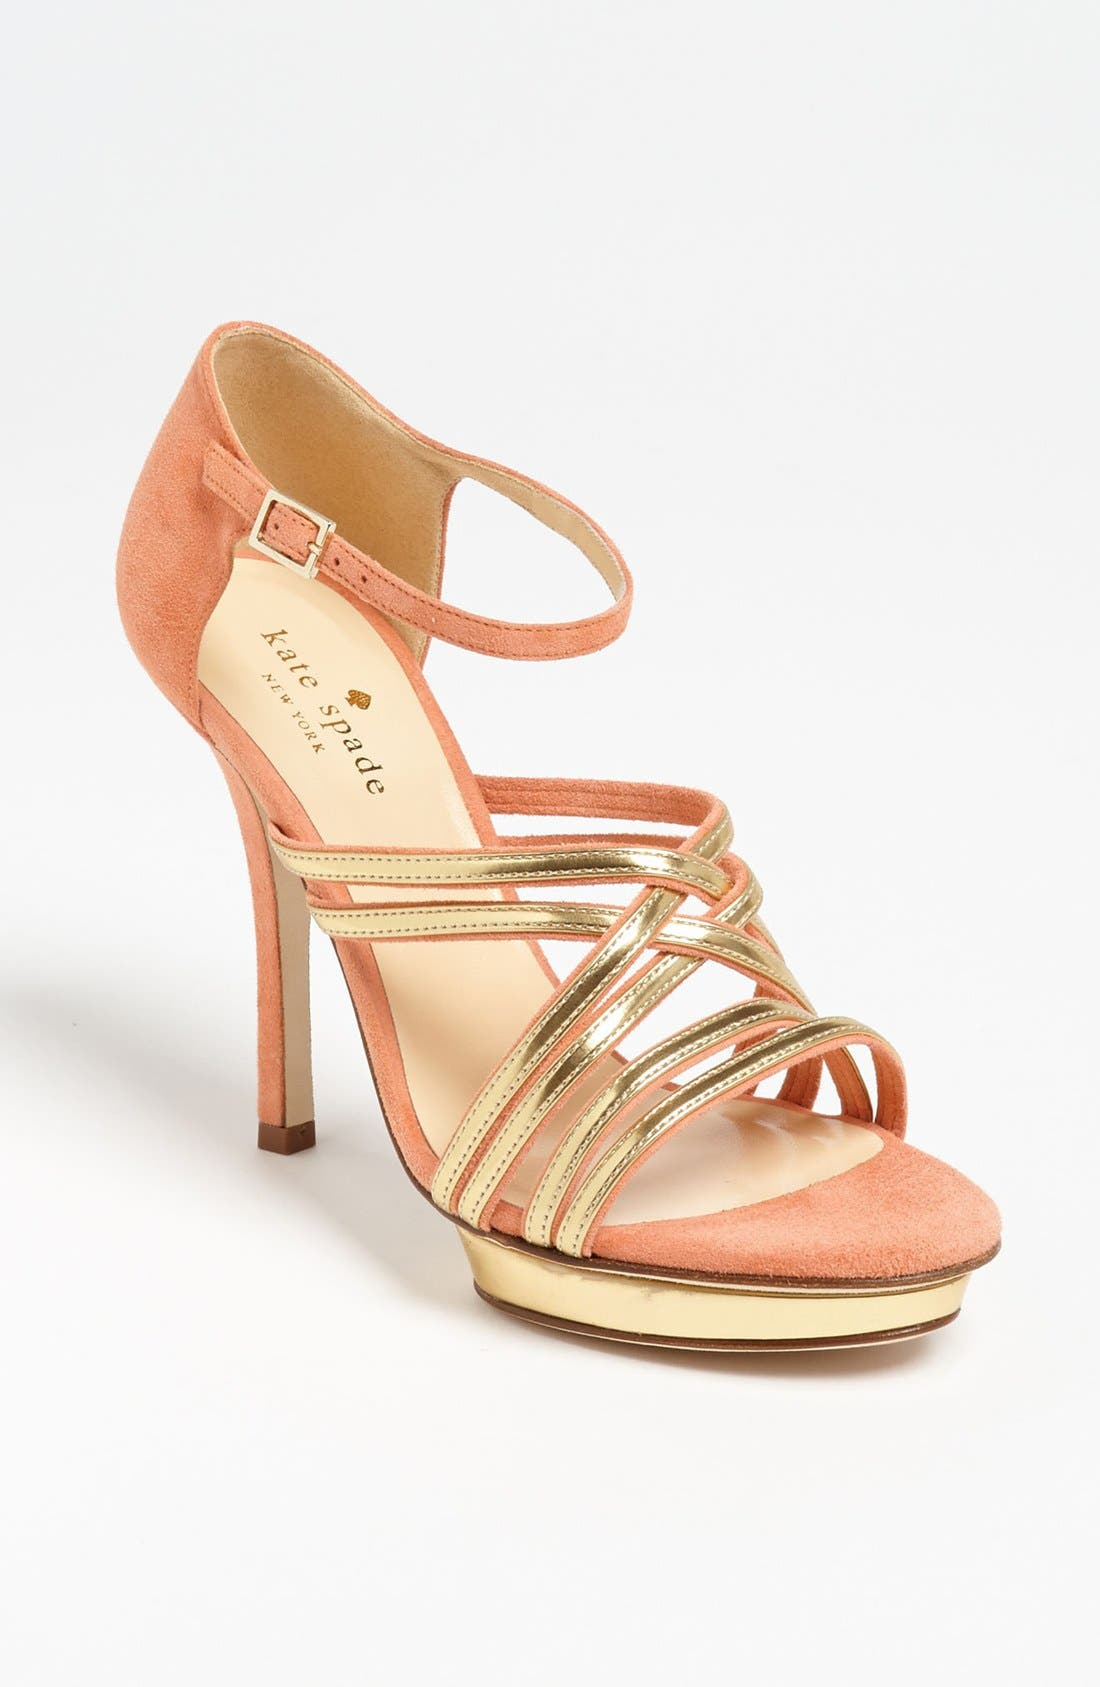 Alternate Image 1 Selected - kate spade new york 'vanity' sandal